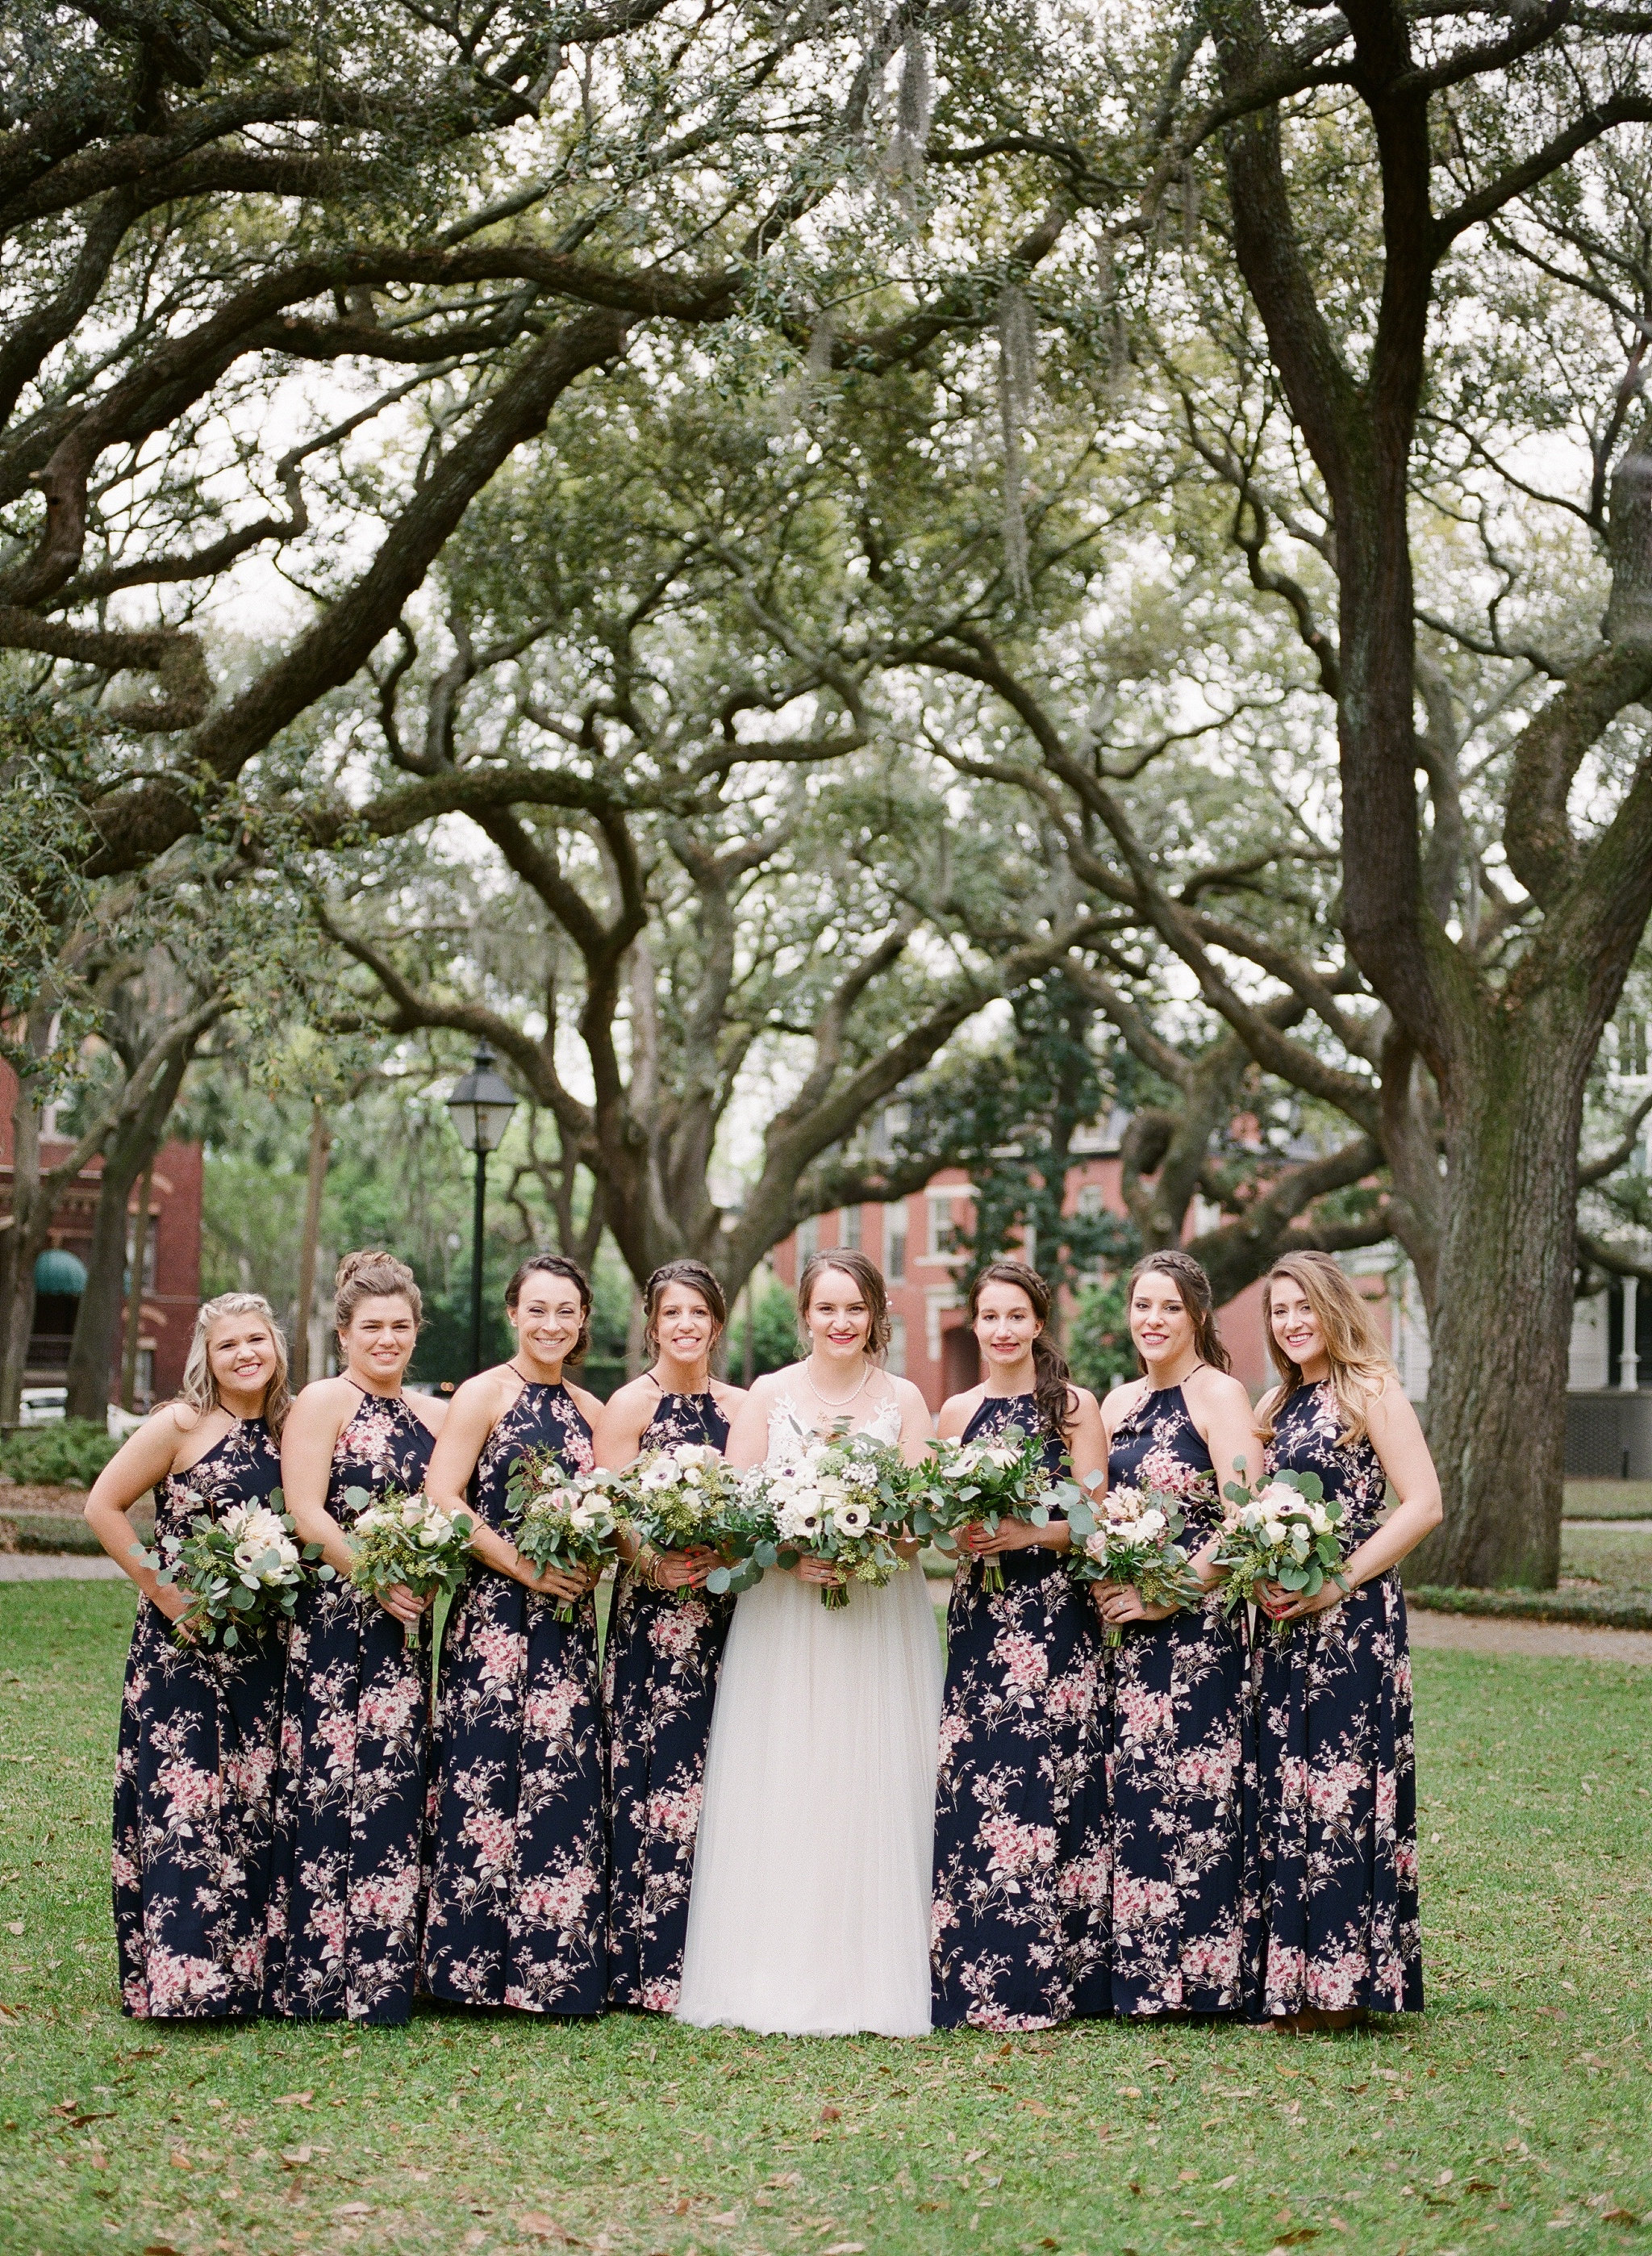 Use that back drop! The massive trees make for a dramatic photo that you will swoon over!